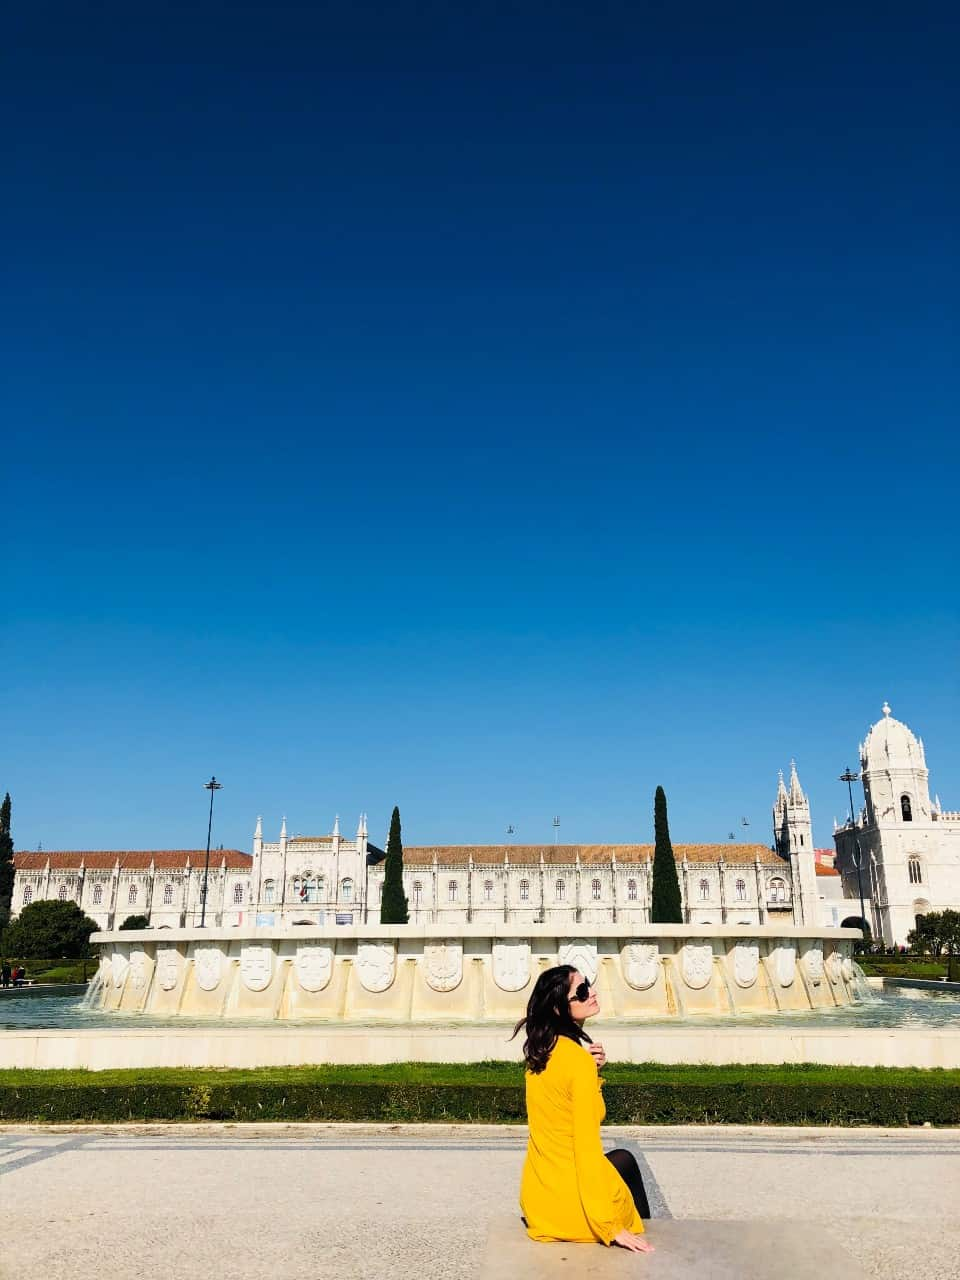 jERONIMOS MONASTERY Lisbon Photo spot